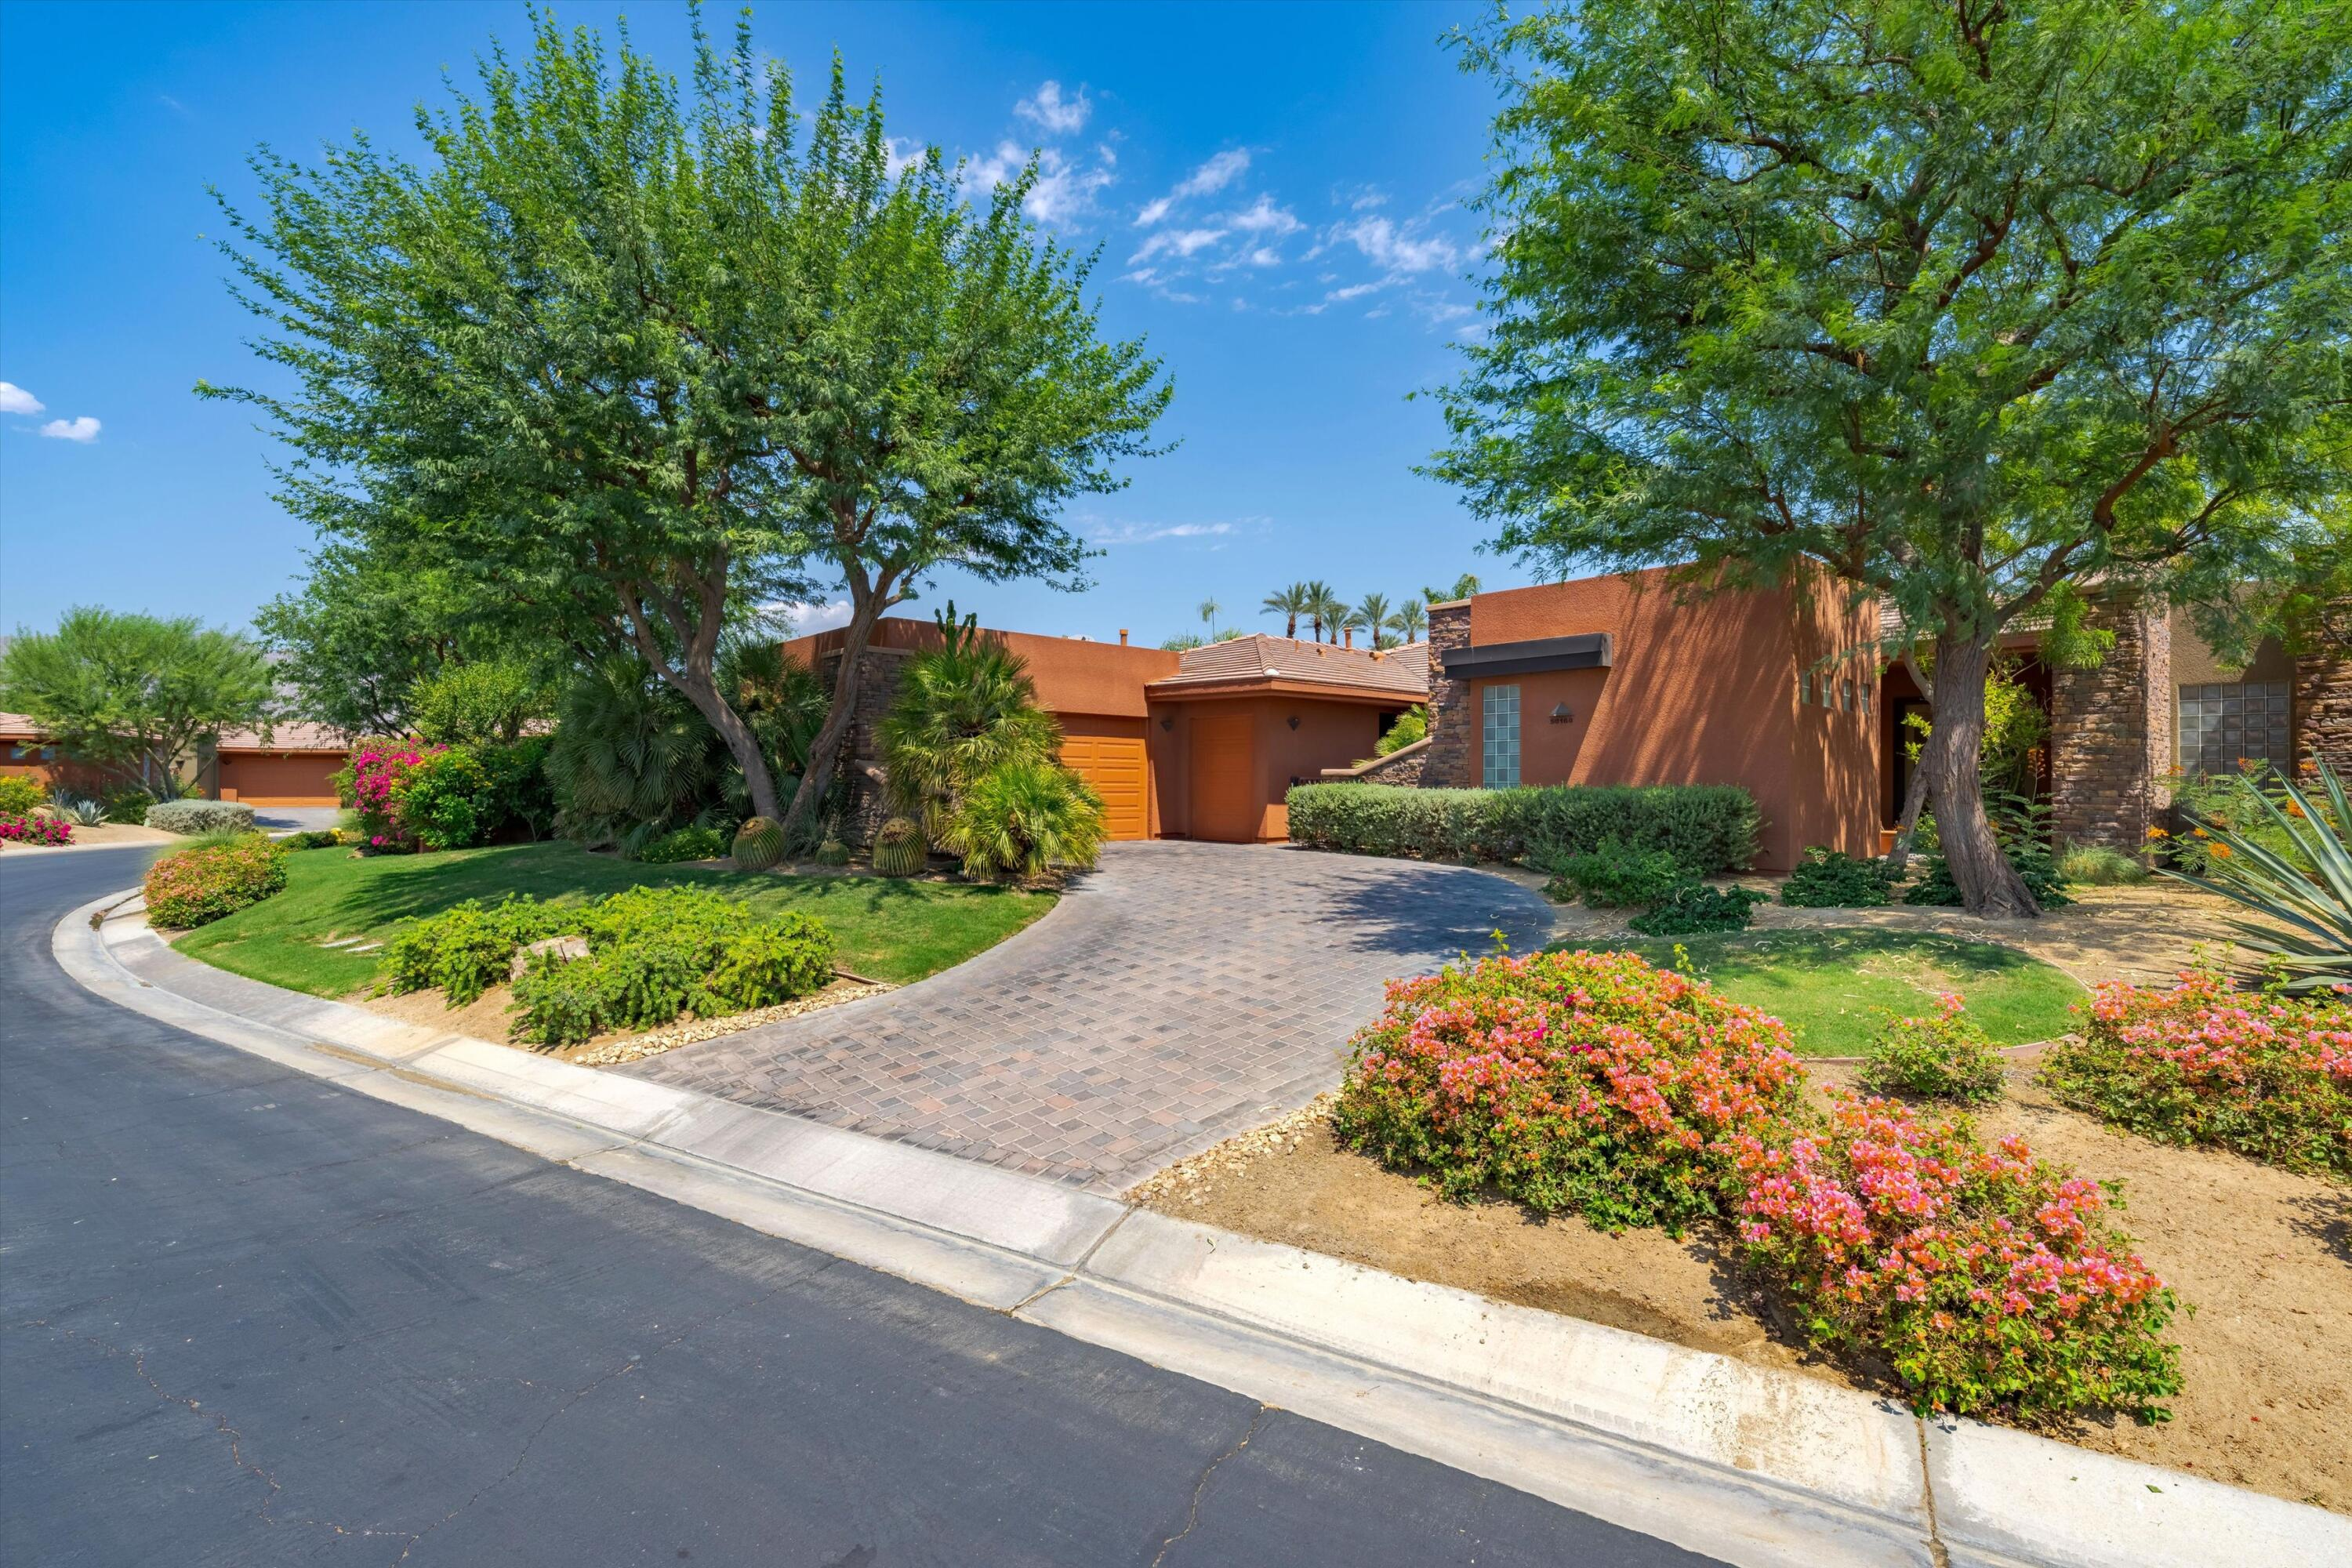 This contemporary, desert-inspired floor plan with its two master suites plus office was awarded the Best in America Living Gold Award in 2002.  Strikingly modern w/angular lines this great room home sits on a knoll with a along driveway for extra off street parking. The interior location, tucked away in a quiet cul-de-sac, allows you to cocoon away from the world. A focal point stackstone fireplace & an expertly crafted interior boasts tall ceilings, floor to ceiling Low-E glass, French doors, surround sound (great room & patio), and cherry cabinetry providing a warmth to the contemporary lines of the home. An expansive patio with interlocking pavers surrounds the beautiful angular 42 ft. pool & spa with waterfall, elevated planters, a buillt-in BBQ island, with beautful low-maintenance desert landscaping.  The gourmet kitchen features slab granite counters, an island w/sink, pantry, stainless steel appliances, a gas range with chimney-style wall vent, double ovens & a  microwave. Amenities include a sunken wet bar, upgraded flooring, dual walk-in closets in the main master bedroom, travertine baths, dual zone central air conditioning. The 2 car garage plus golf cart area has a workbench and cold room for storage. With a 24 hour gate guard the HOA covers so much in this award wining development (itemized in attachment) with its beautiful waterways & lakes. Located w/easy access to the amenities of desert living- shopping, golf, tennis & restaurants. Truly a beautiful home.